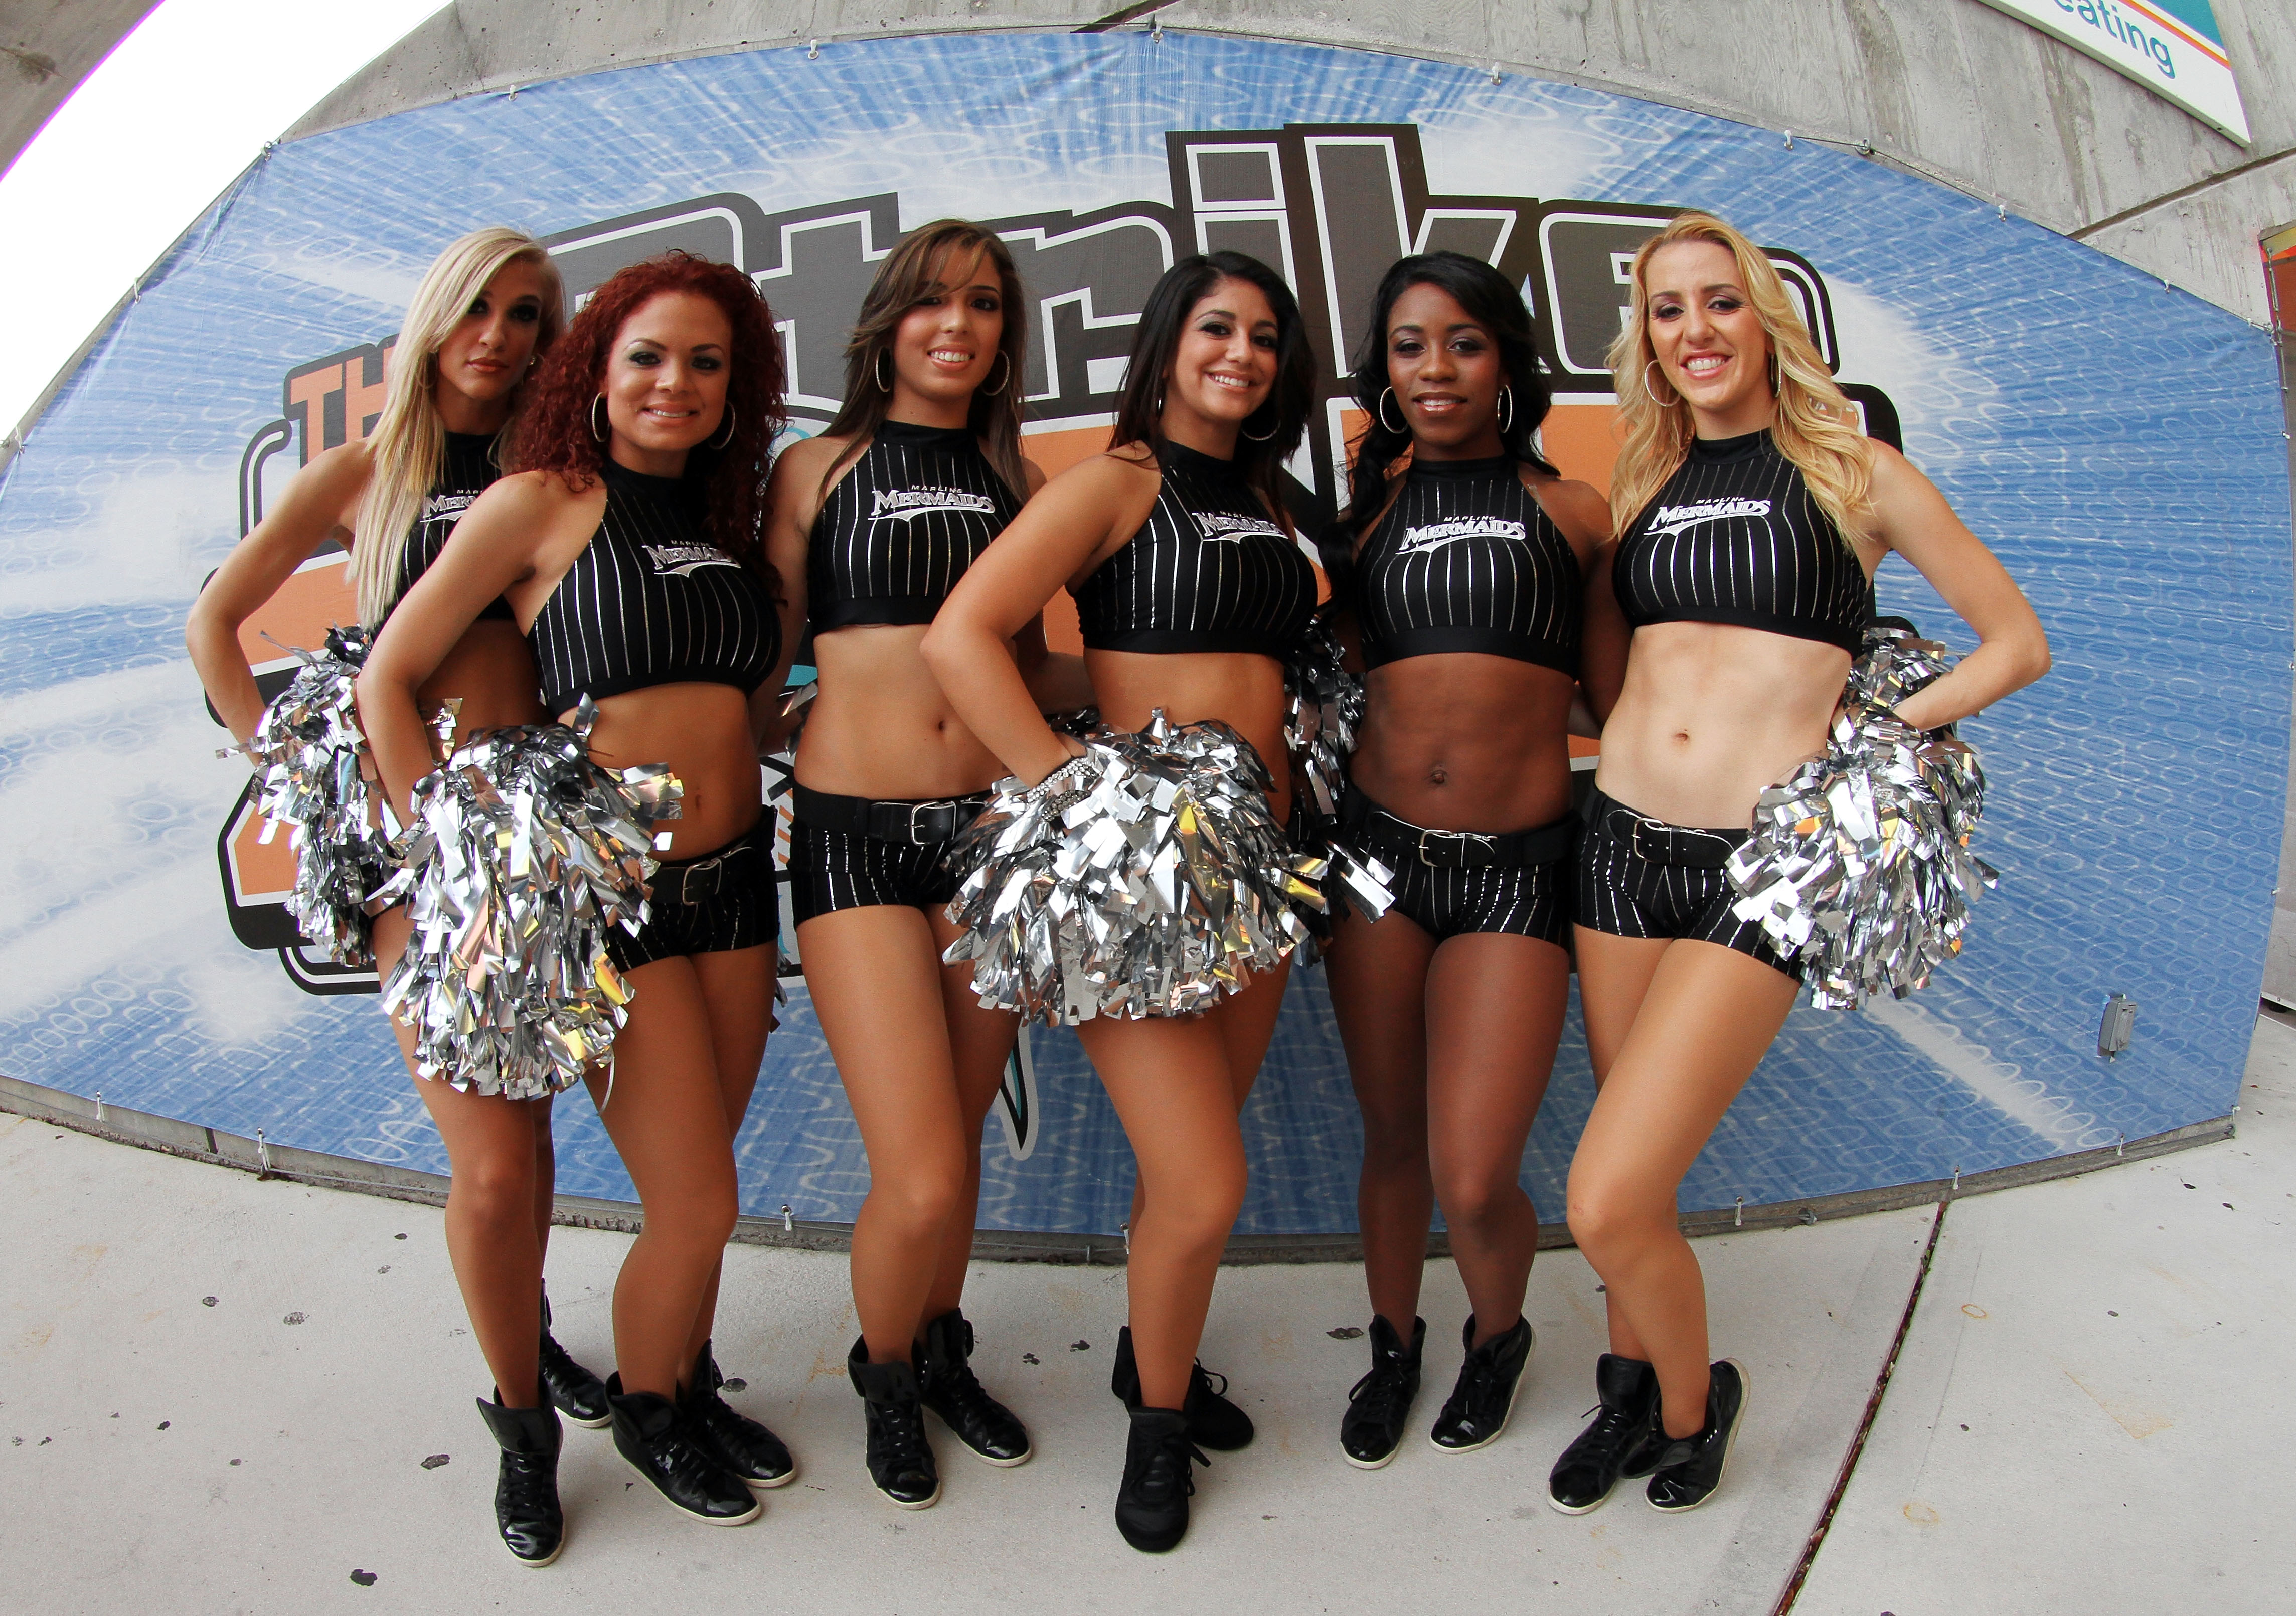 MIAMI - APRIL 09:  Marlins' Mermaids pose for a photo while they greet fans before the Los Angeles Dodgers take on the Florida Marlins during the Marlins home opening game at Sun Life Stadium on April 9, 2010 in Miami, Florida.  (Photo by Doug Benc/Getty